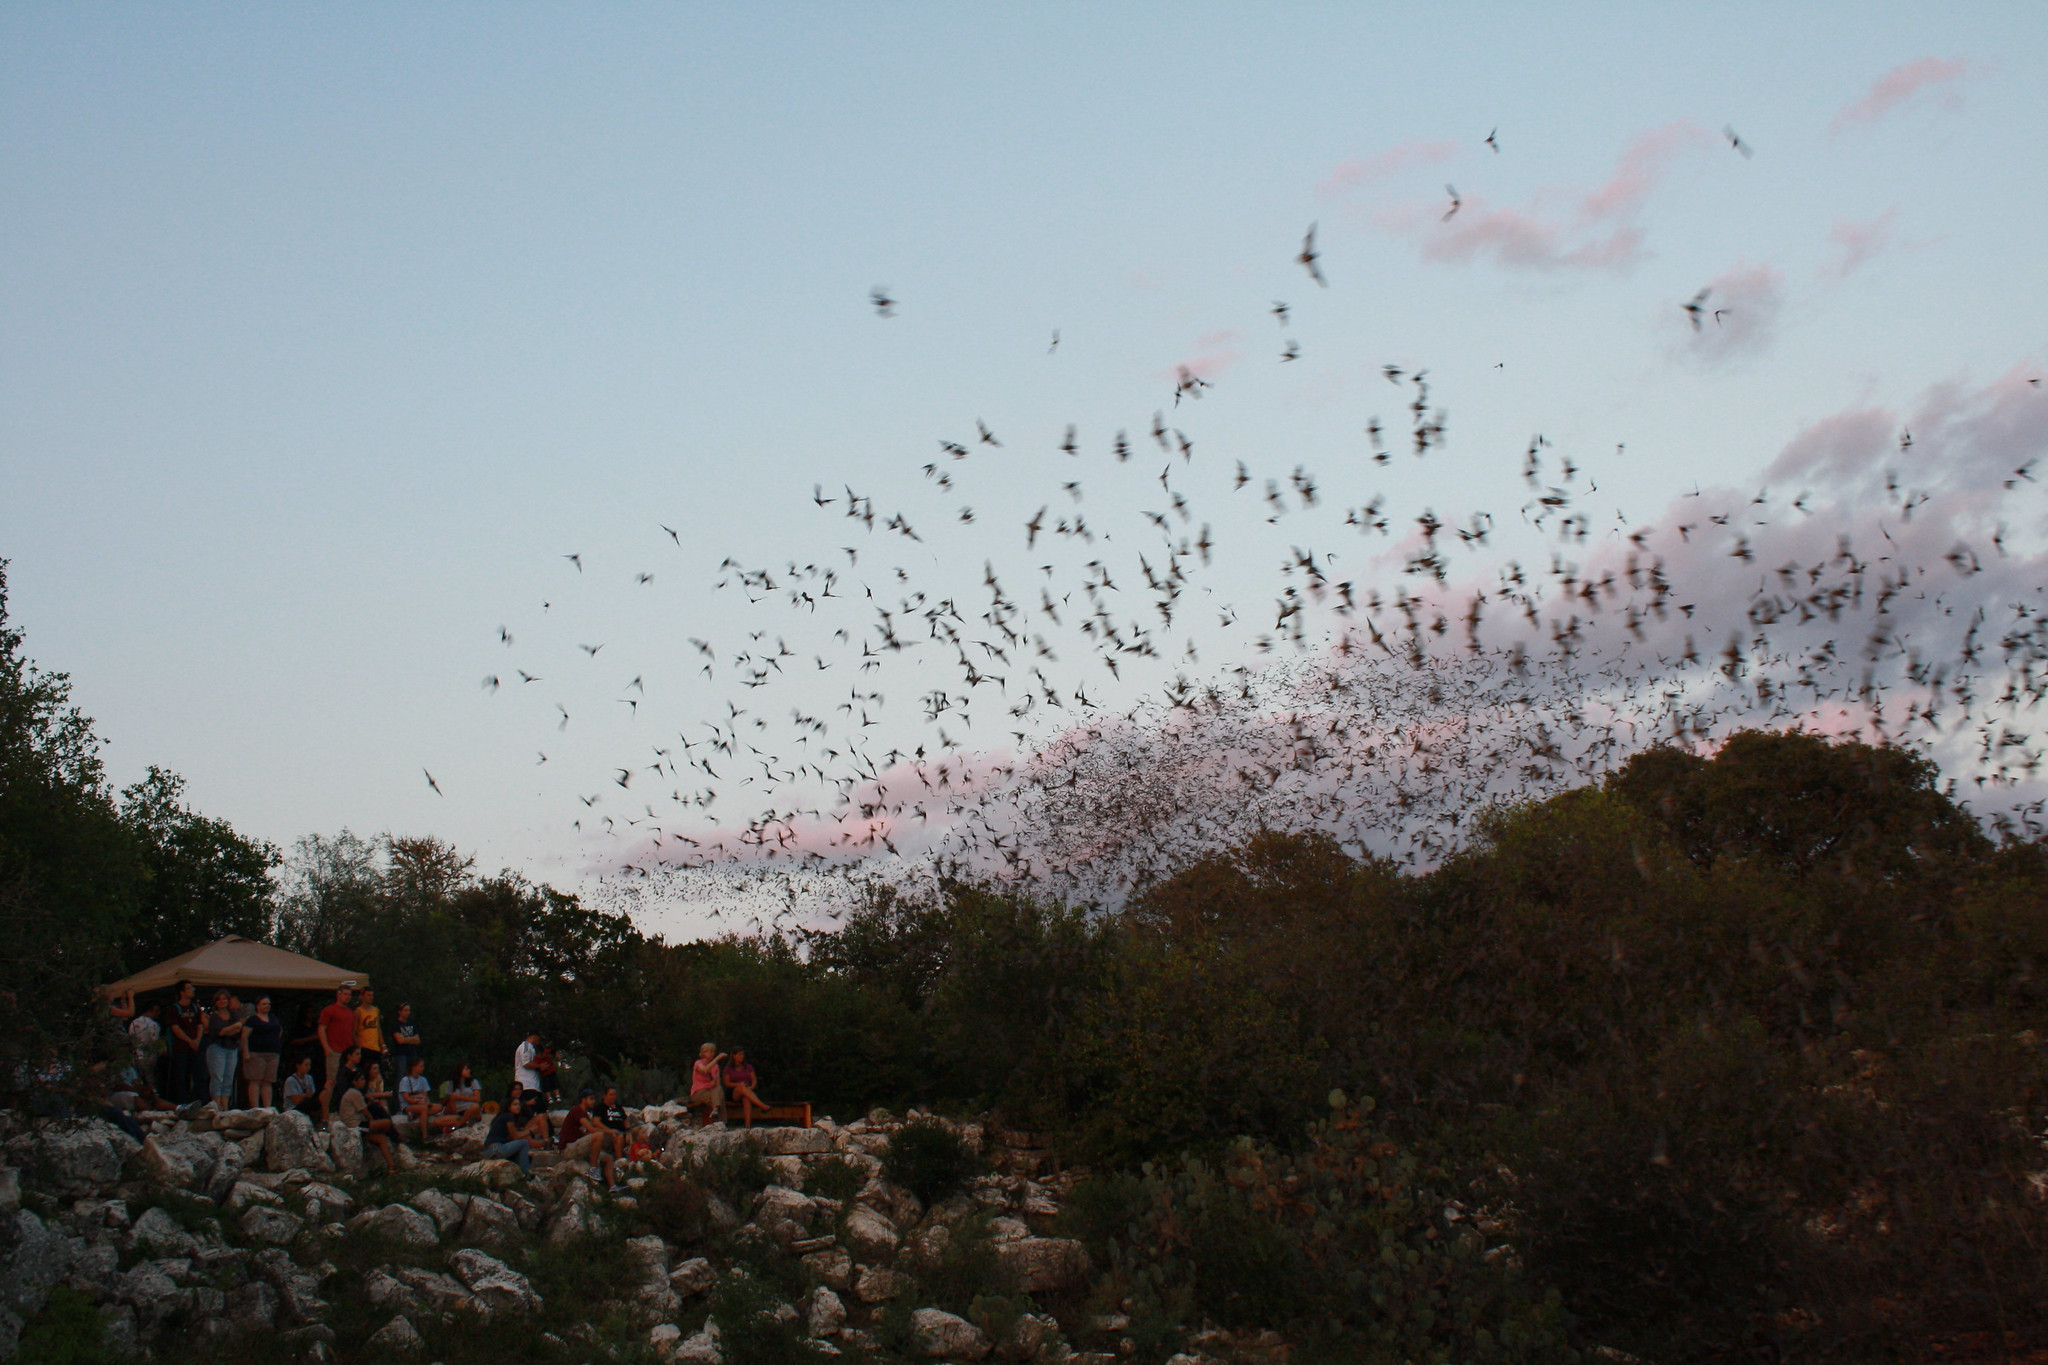 Onlookers watch as Mexican free-tailed bats exiting Bracken Bat Cave